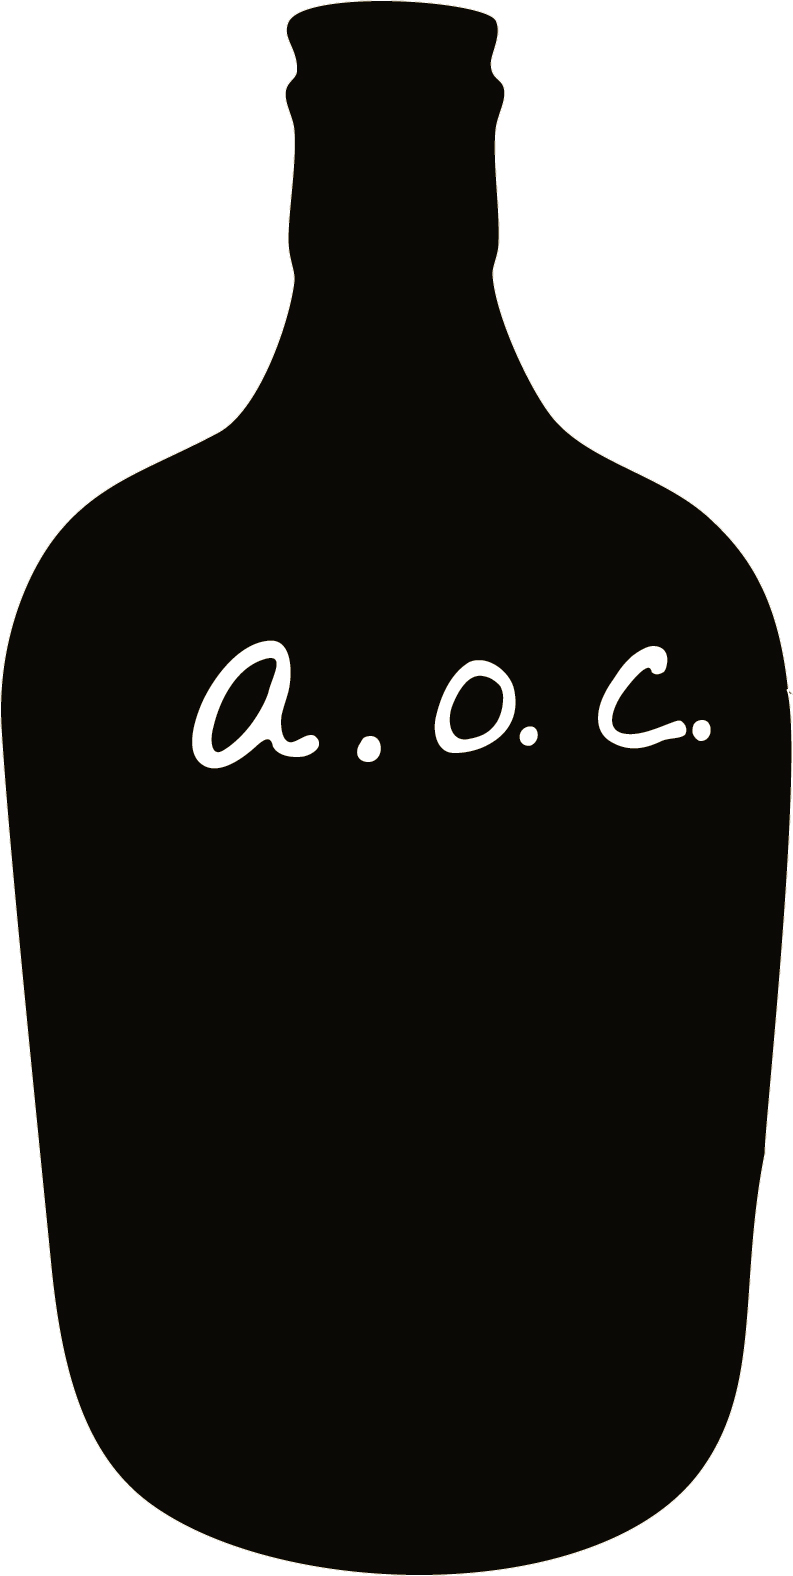 aoc single bottle logo.jpg